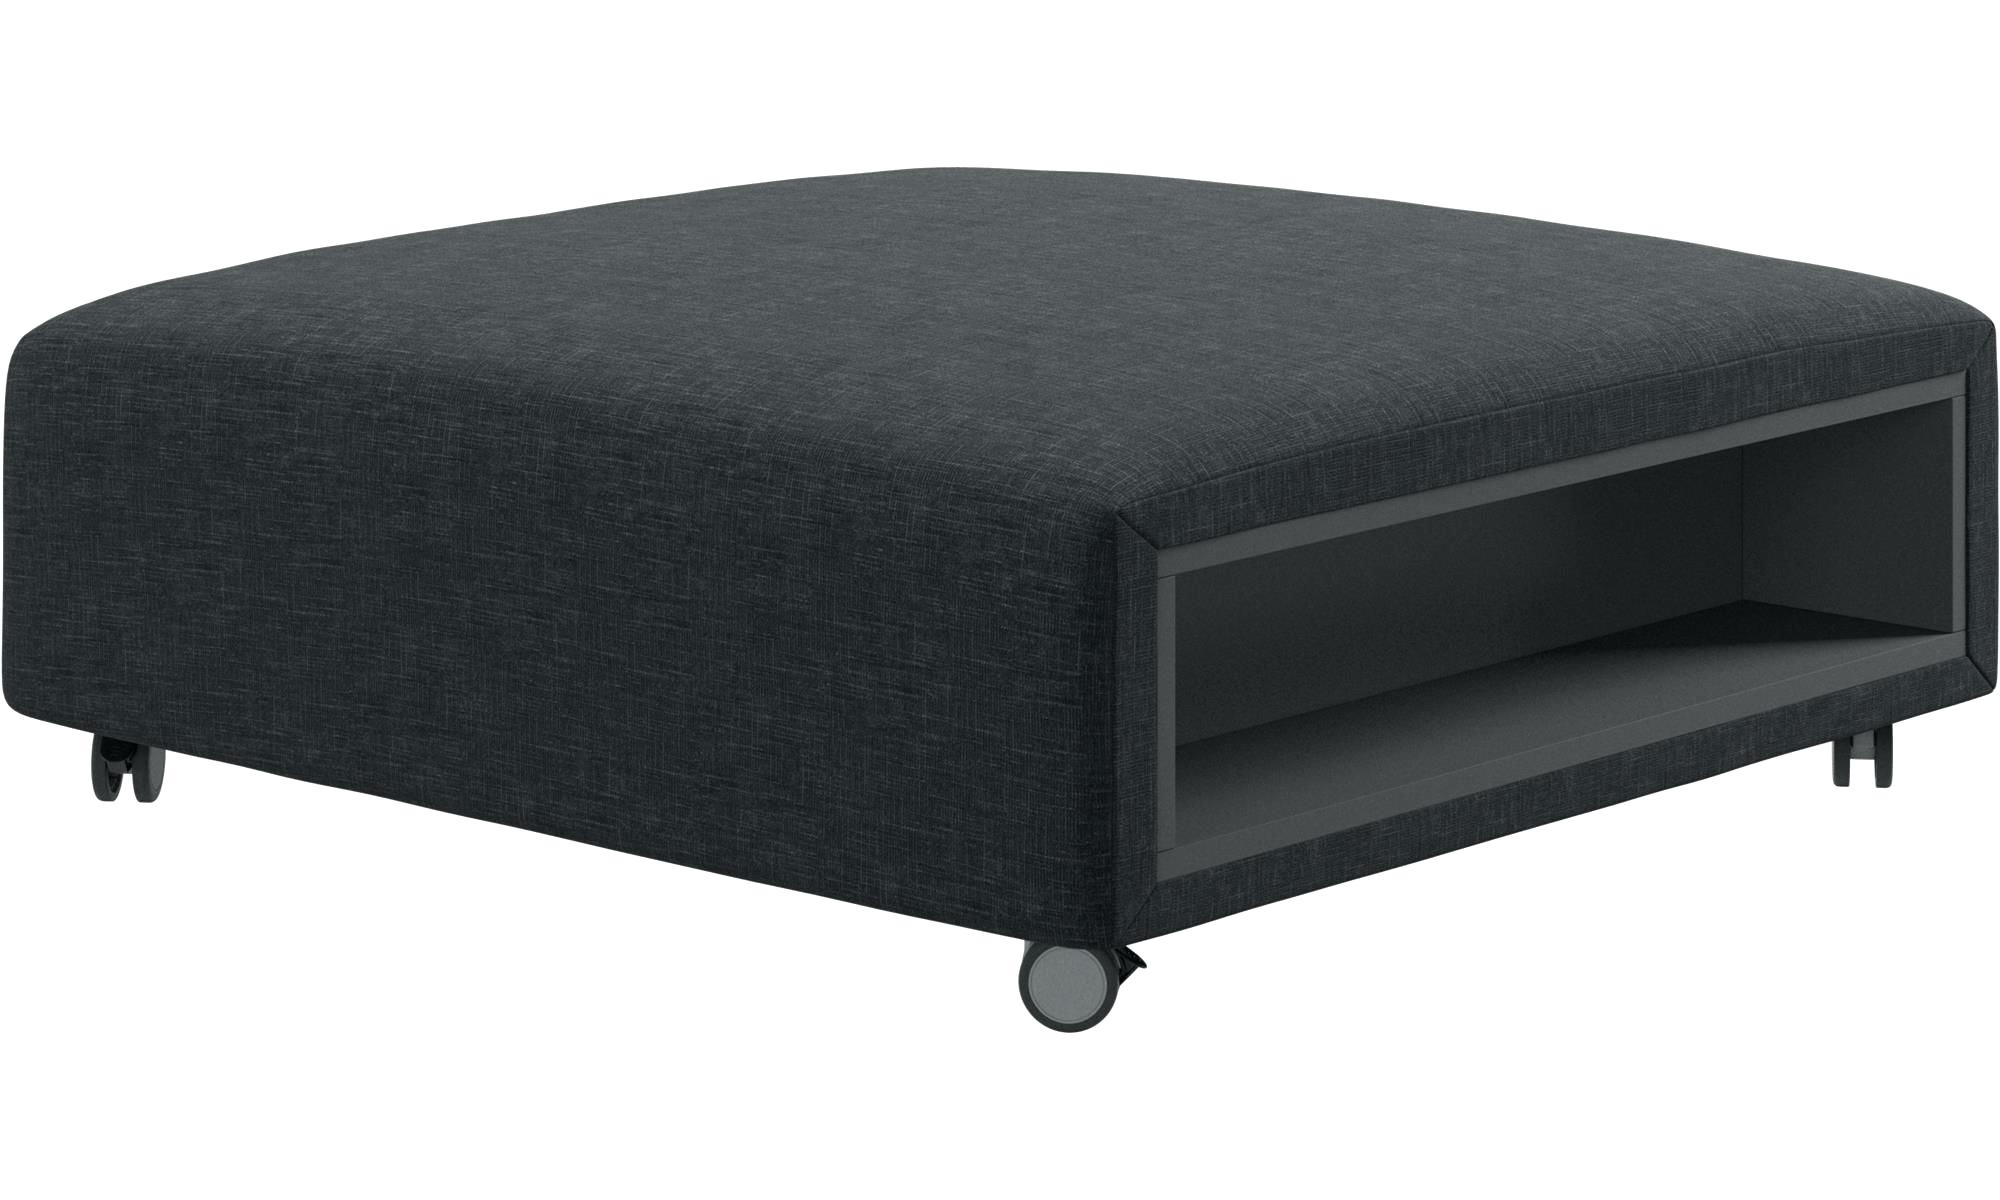 Ottoman With Wheels Ottomans Pouf On Wheels With Storage Left And In Most Recent Ottomans With Wheels (View 11 of 15)